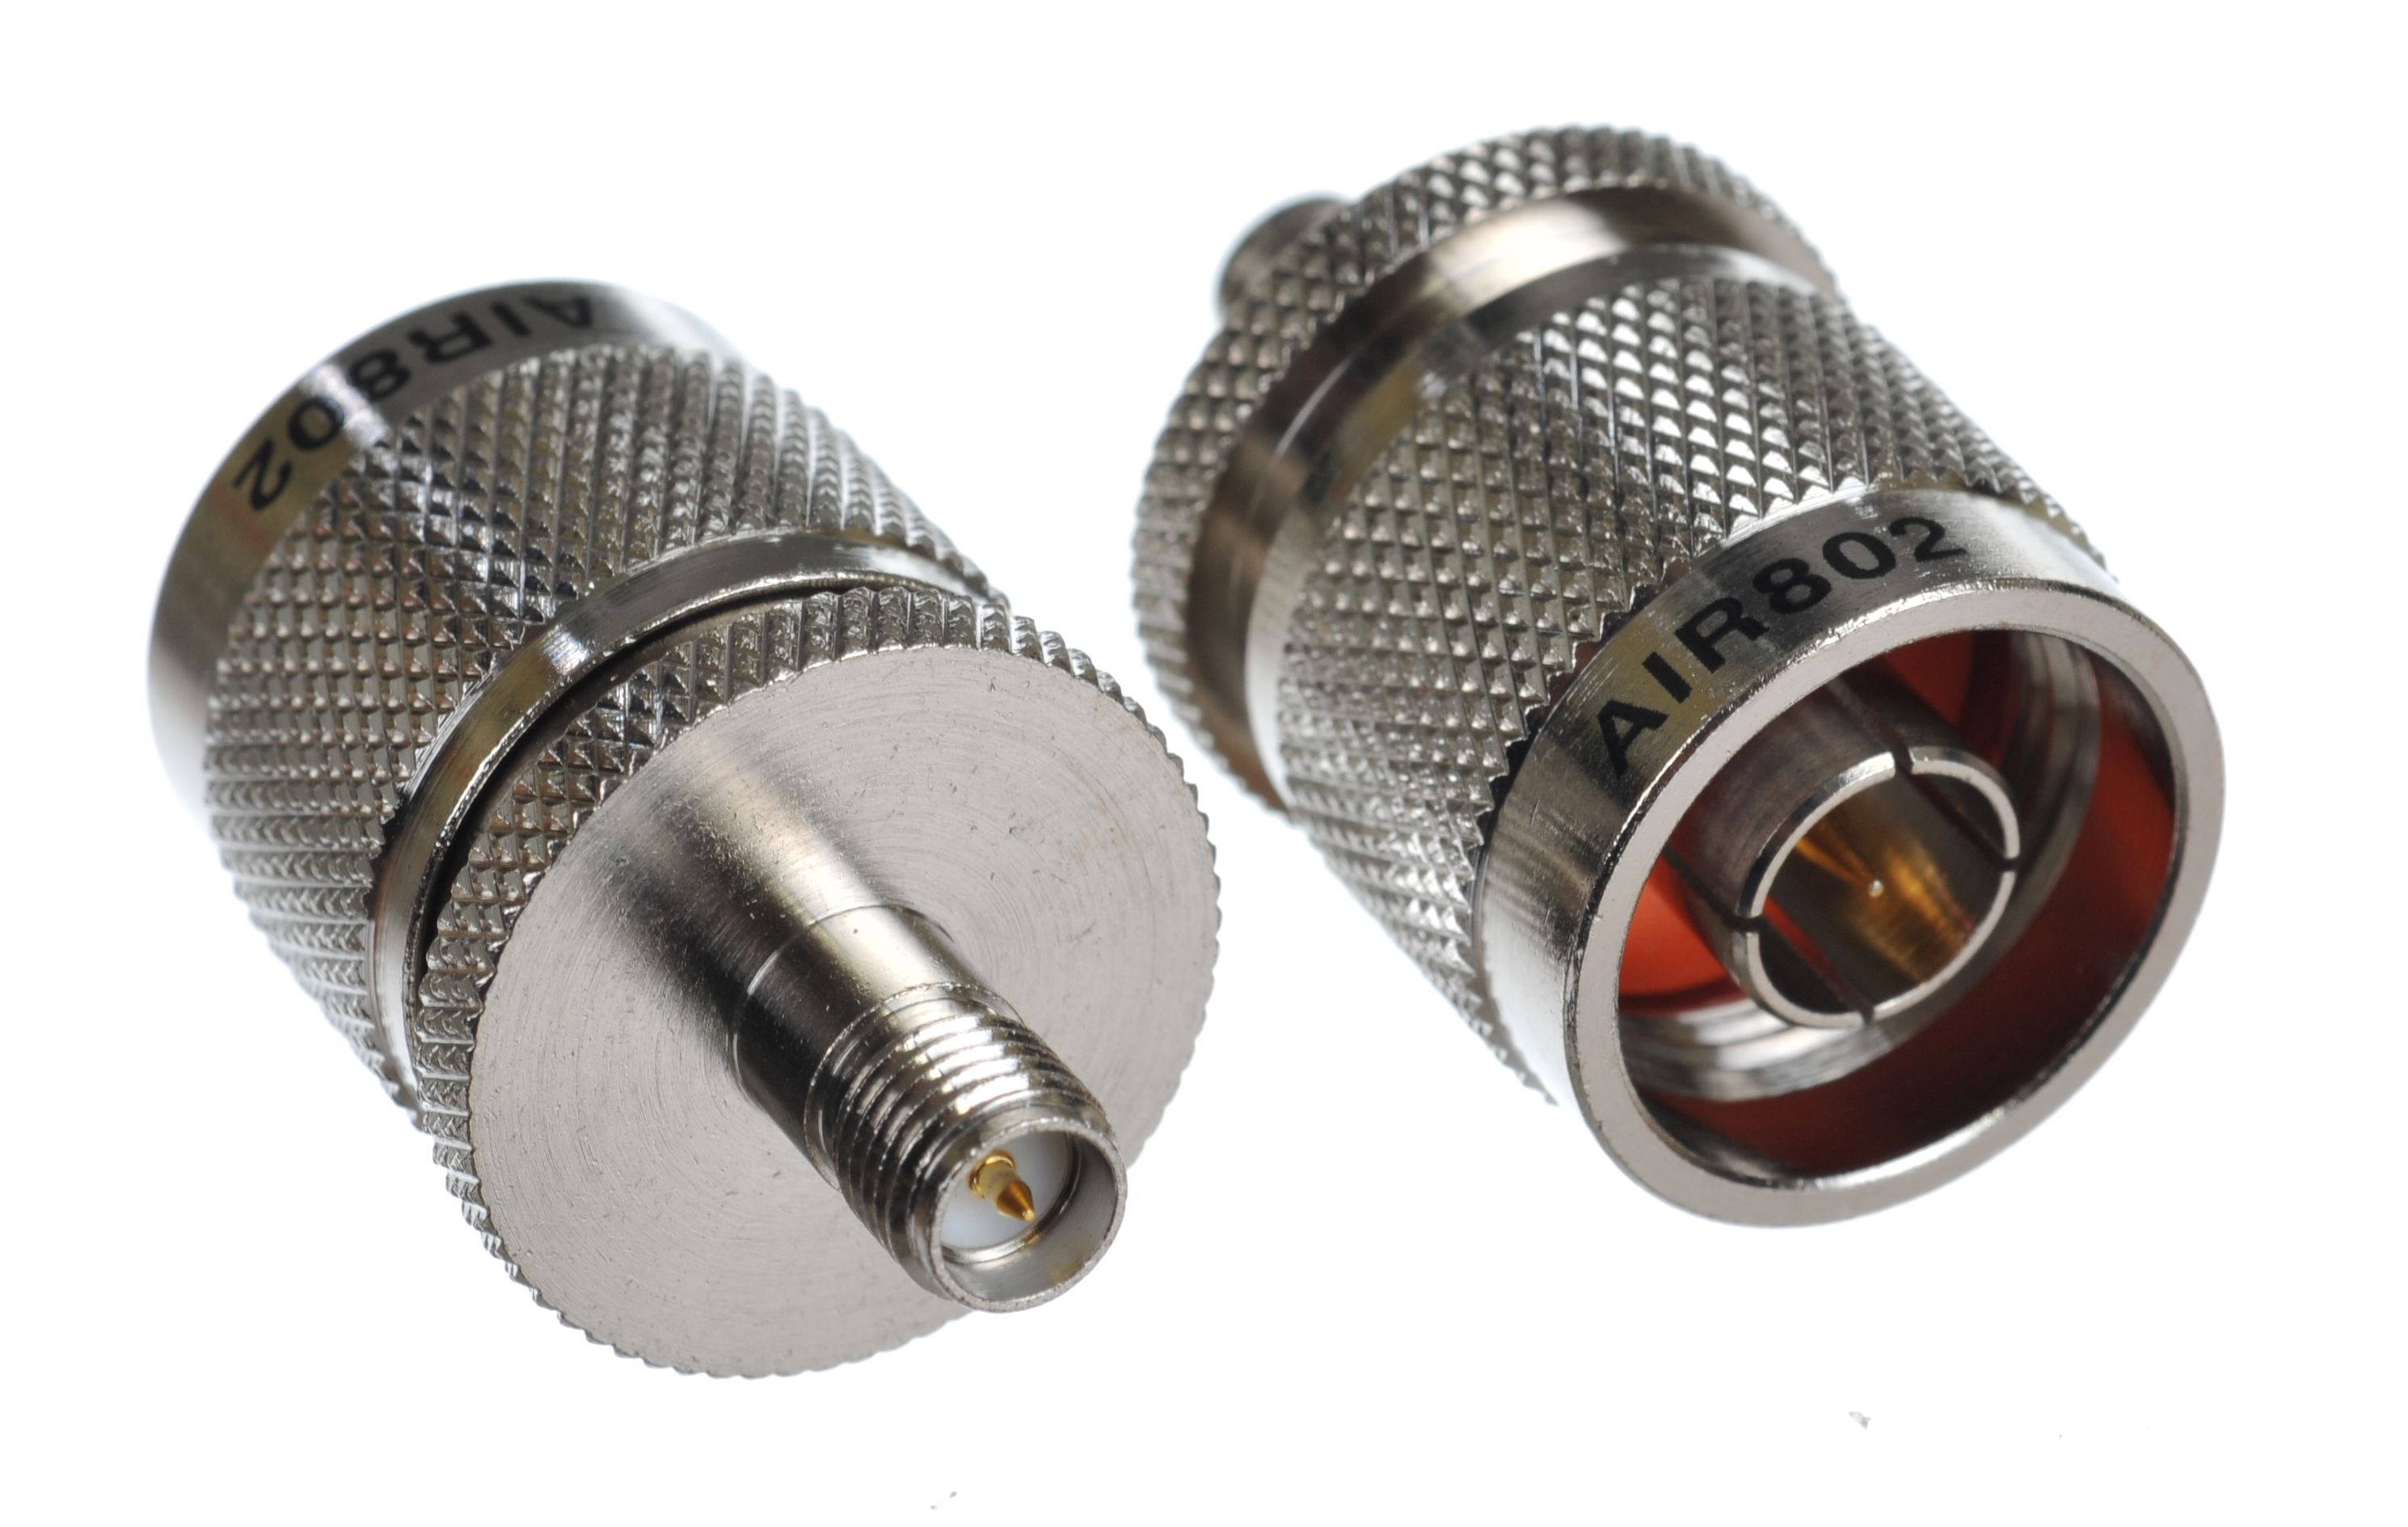 Coaxial inter-series adapter with the left-side showing the RP-SMA jack-female and the right-side the N plug-male connector.